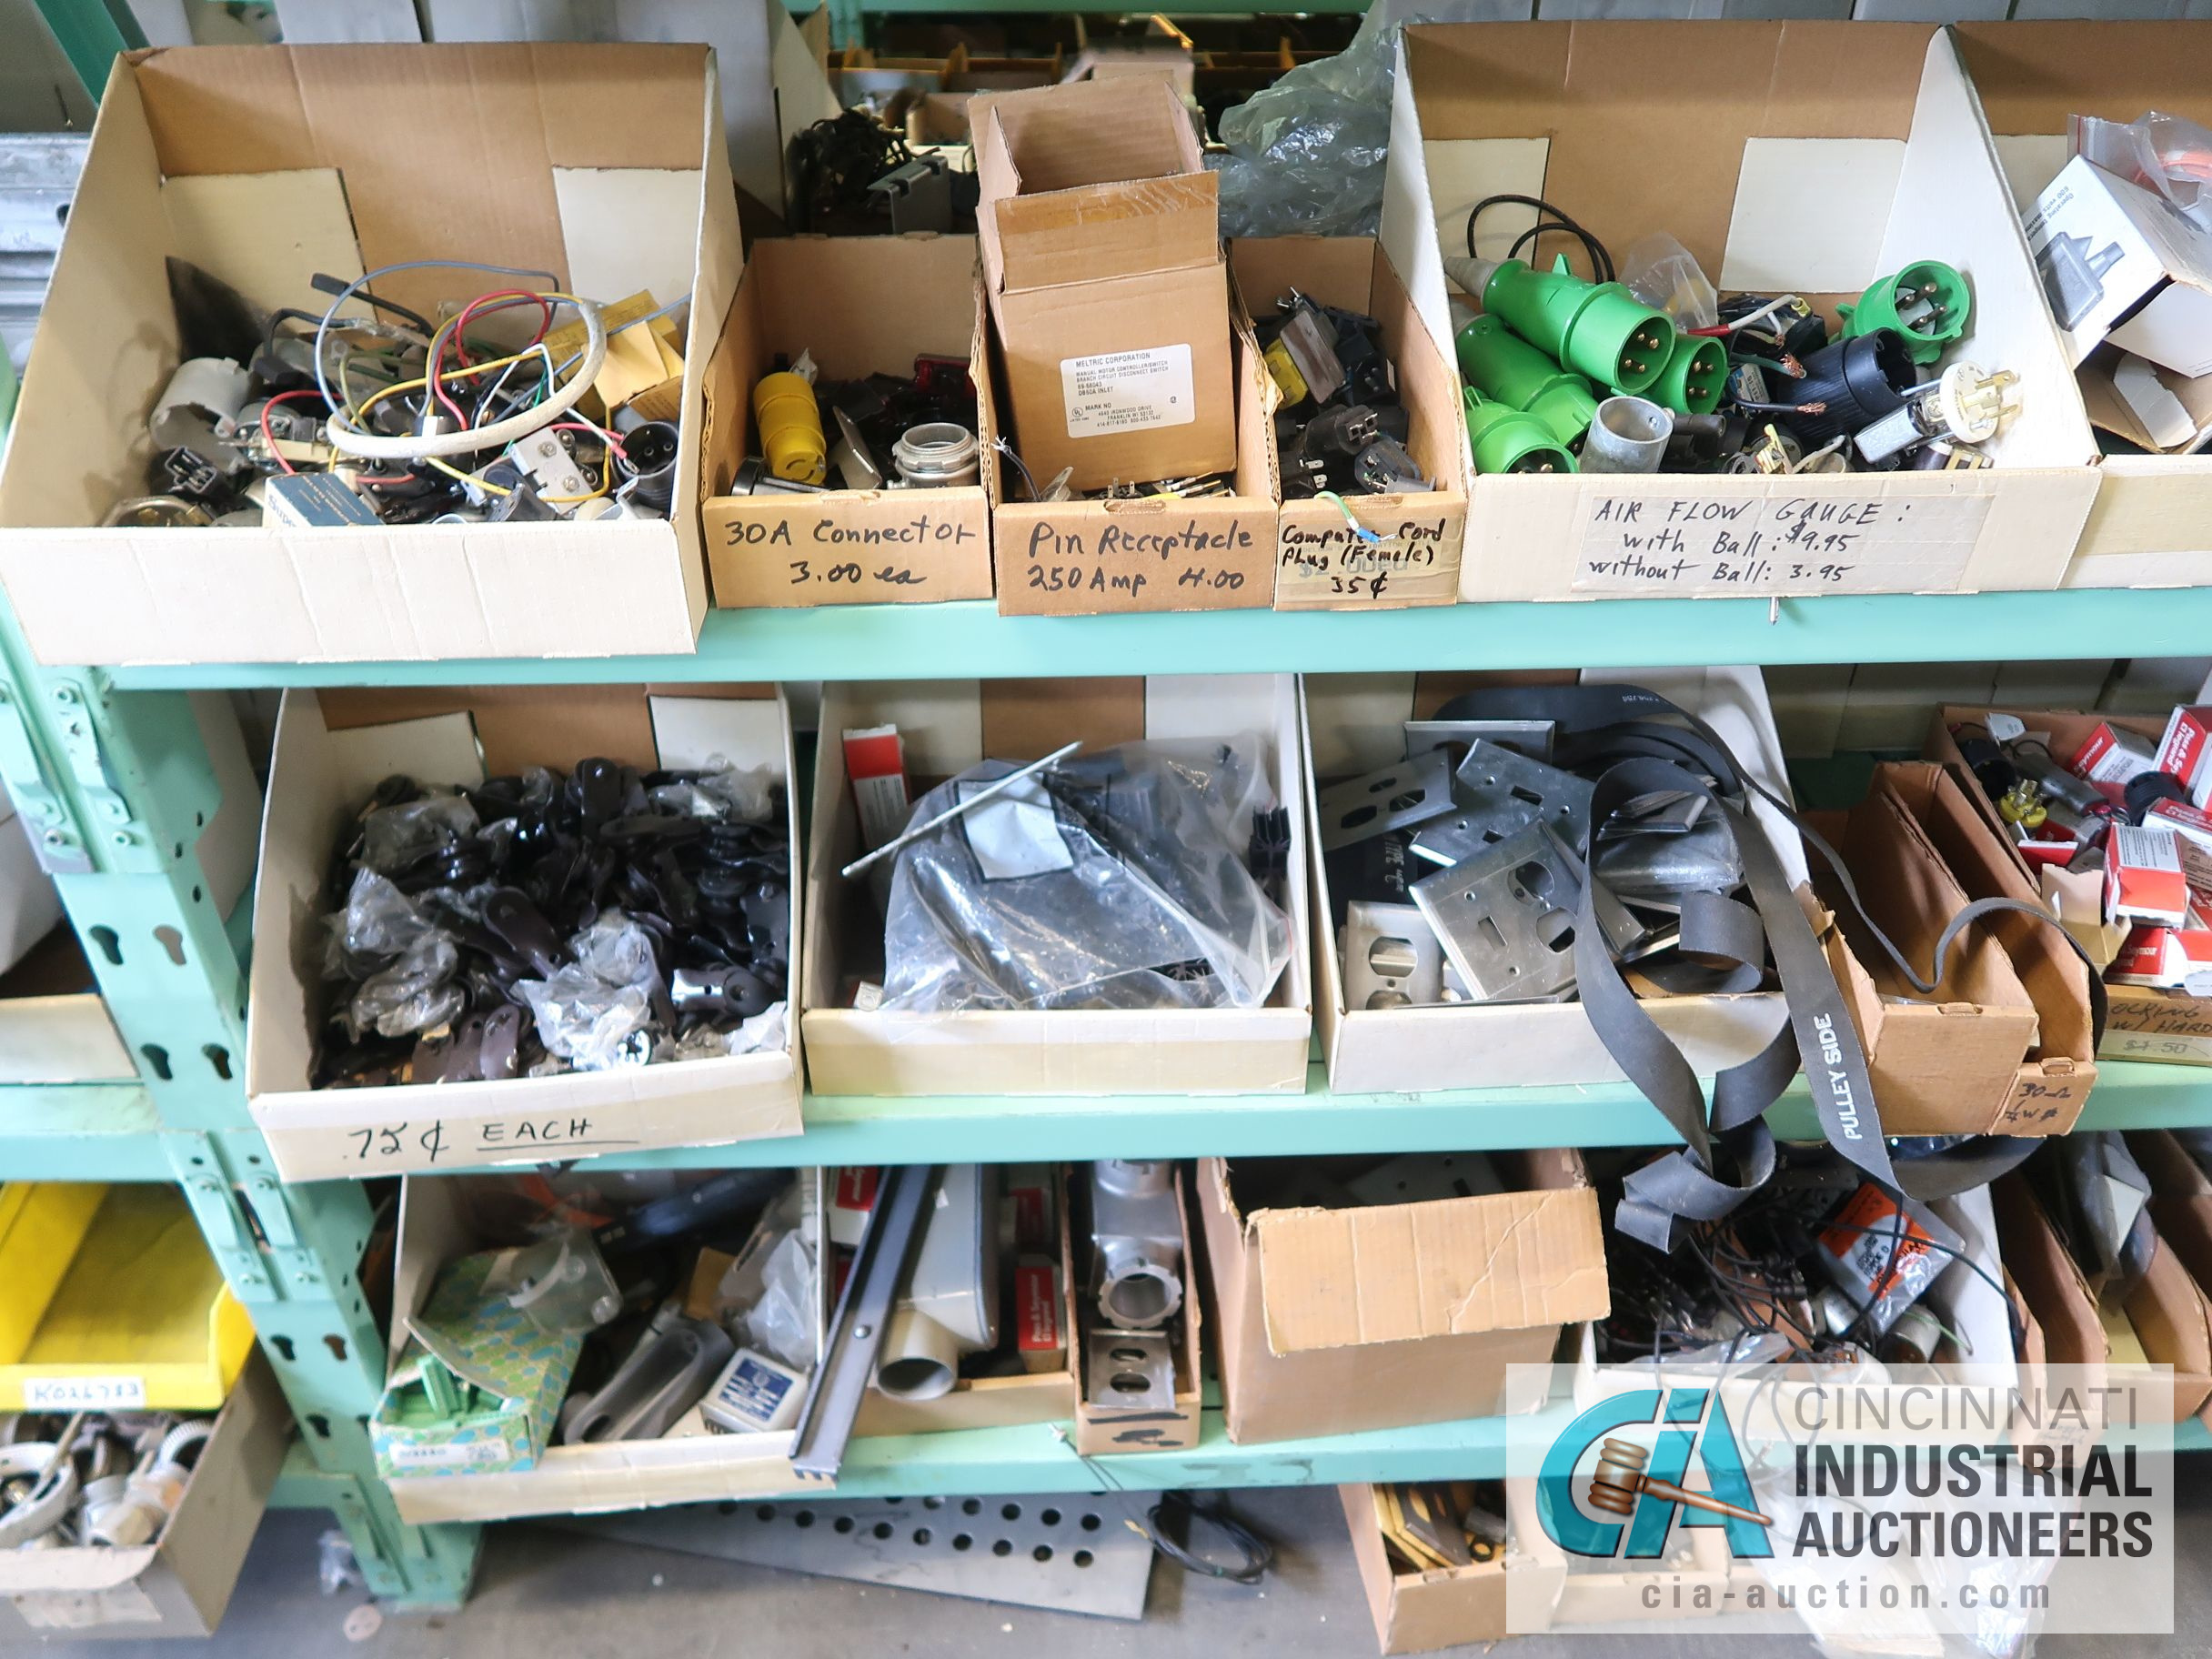 CONTENTS OF (6) RACKS INCLUDING MISCELLANEOUS AUTOMOTIVE PARTS, BREAKS, ROTORS, GASKETS, MOUNTING - Image 18 of 38